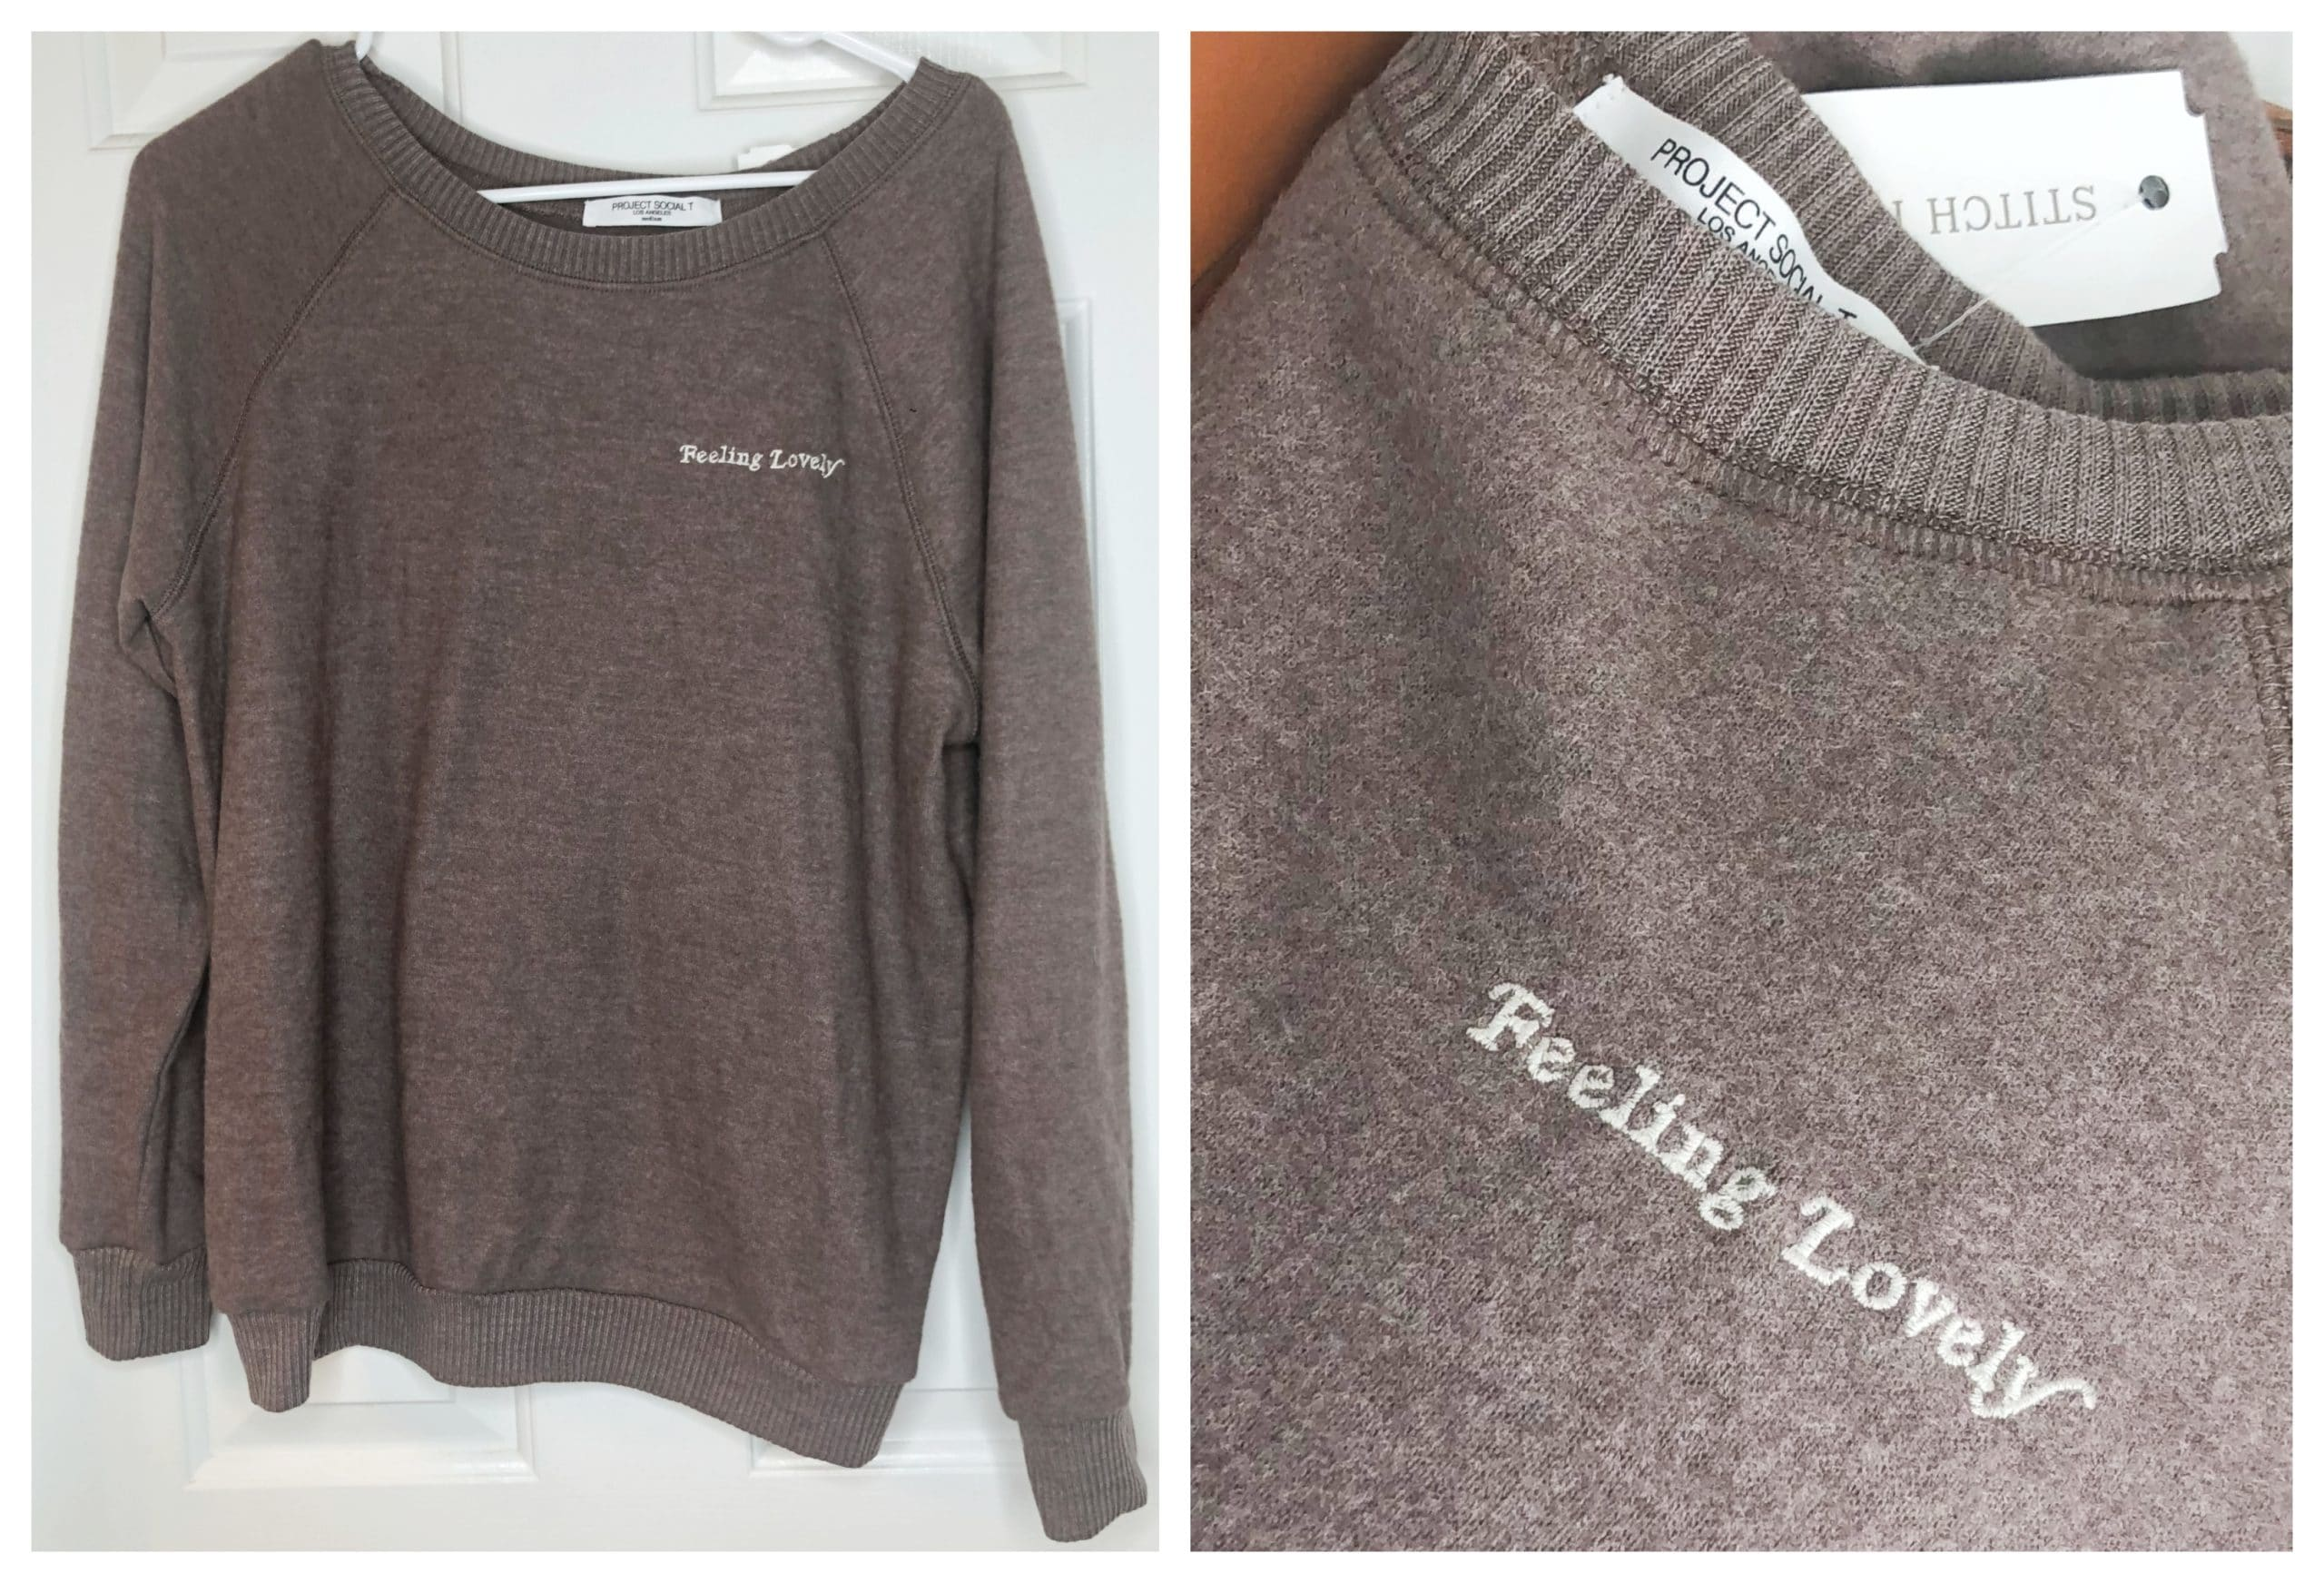 Stitch Fix Reviews - Feeling Lovely Sweater